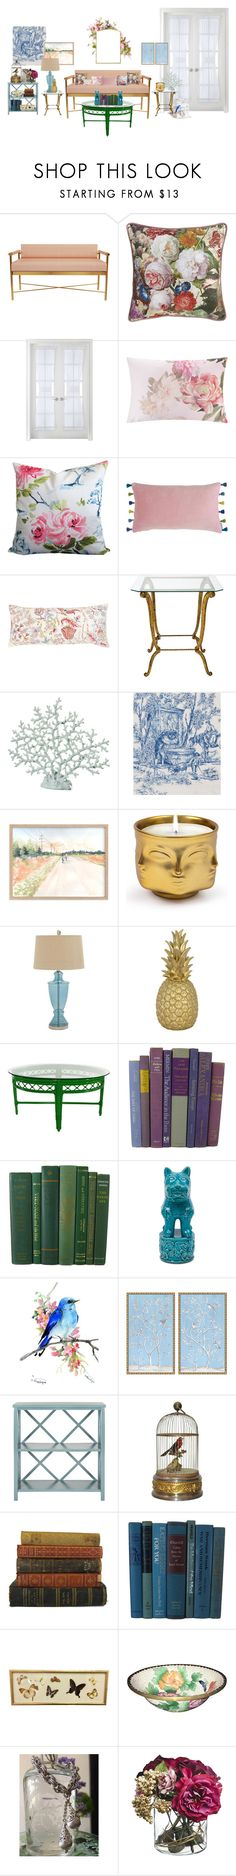 """My Dream Room"" by ccmonkvintage on Polyvore featuring interior, interiors, interior design, home, home decor, interior decorating, Sherry Kline, Liz Claiborne, Ted Baker and Bluebellgray"